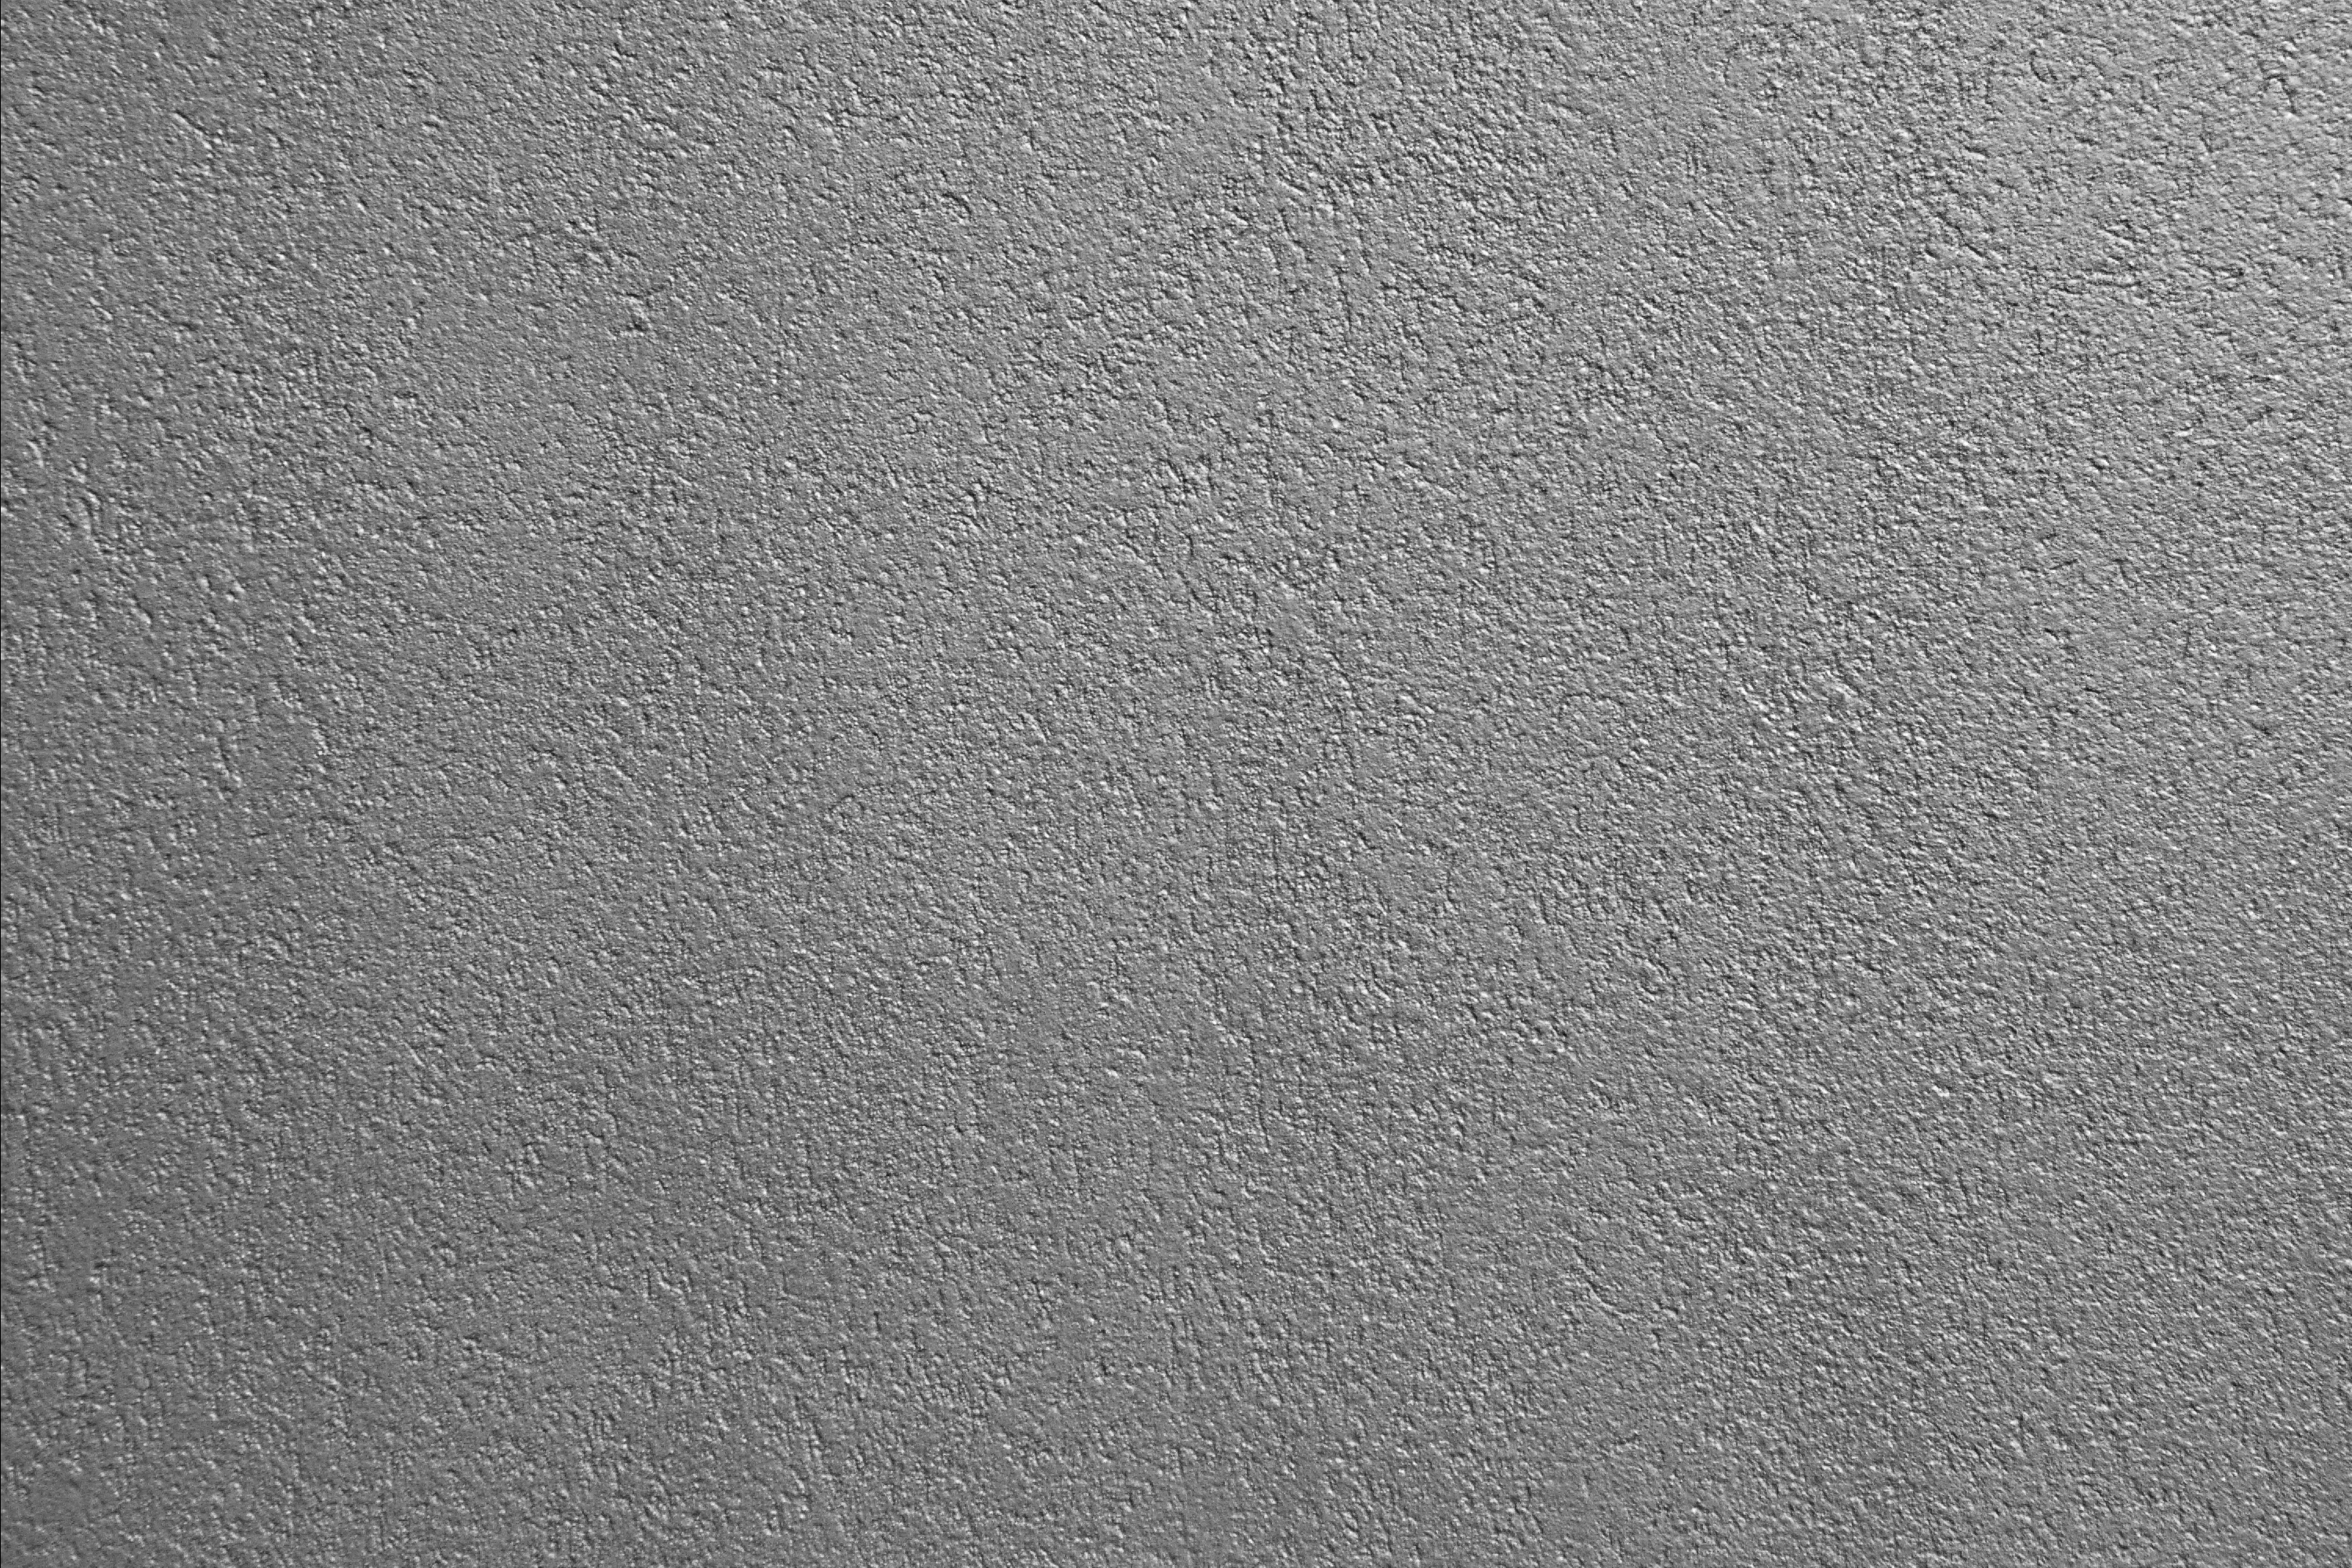 Free Texture Painted Concrete Desaturated Free Texture